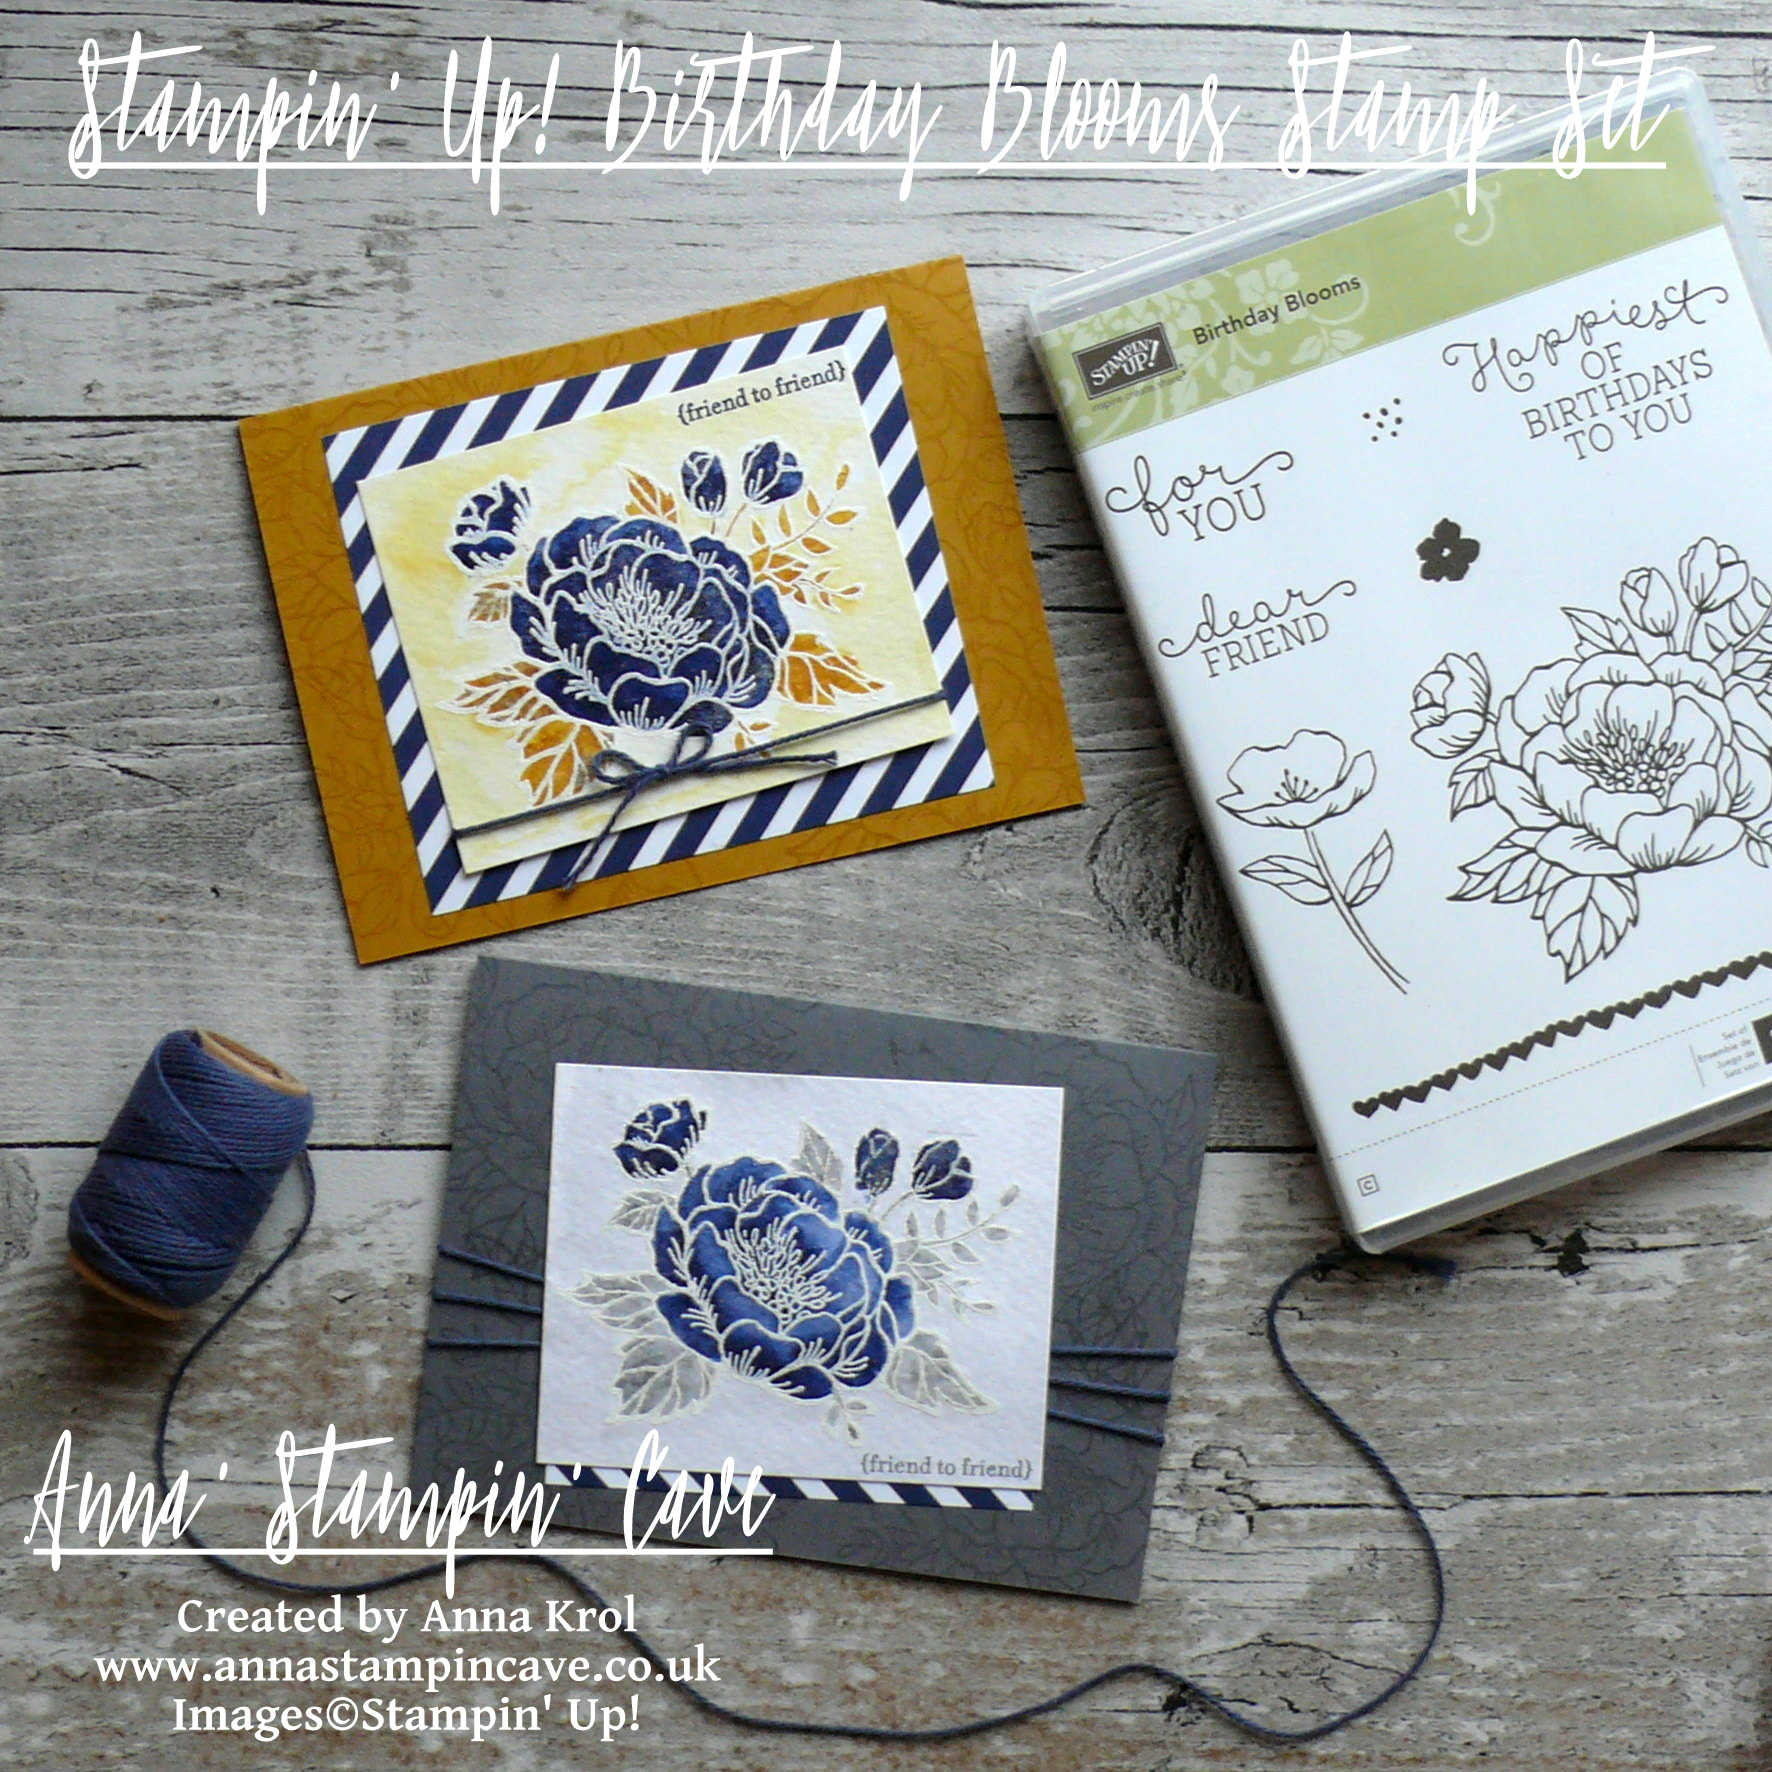 Anna' Stampin' Cave_Stampin' Up! Birthday Blooms Stamp Set_Watercolour Card_Delightful Dijon with Night Of Navy_Basic Grey with Night Of Navy